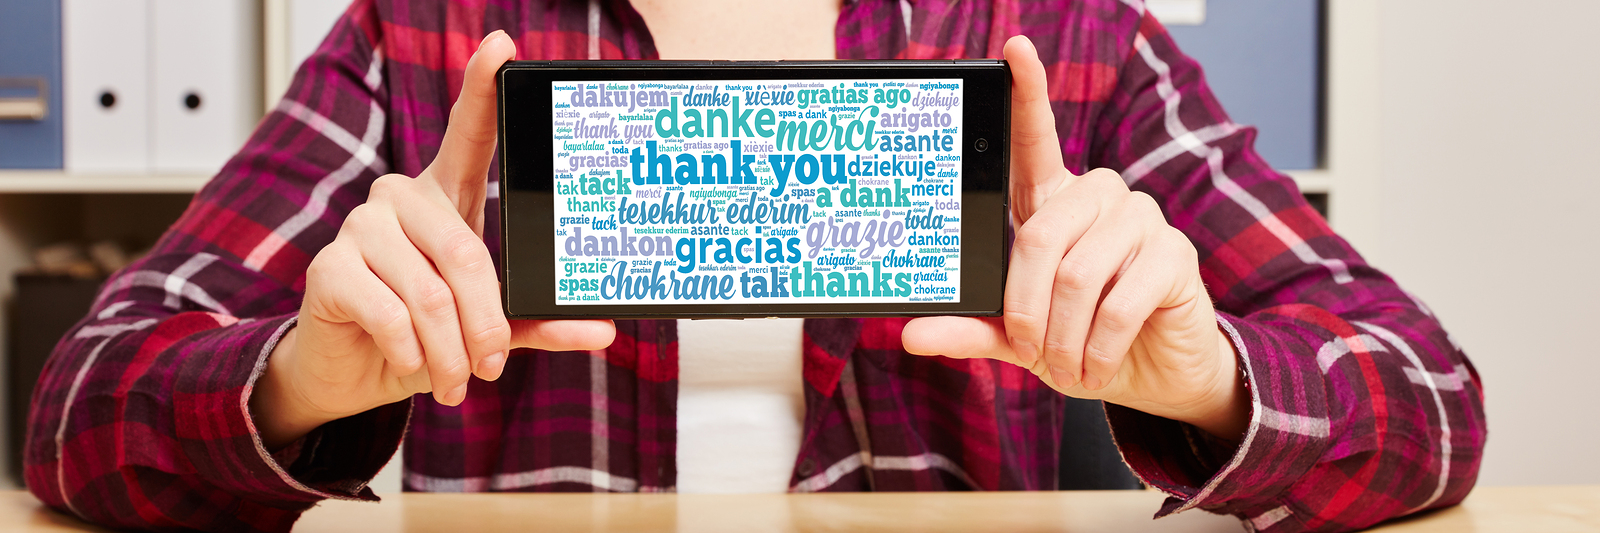 Thank you in different languages on a smartphone's touchscreen